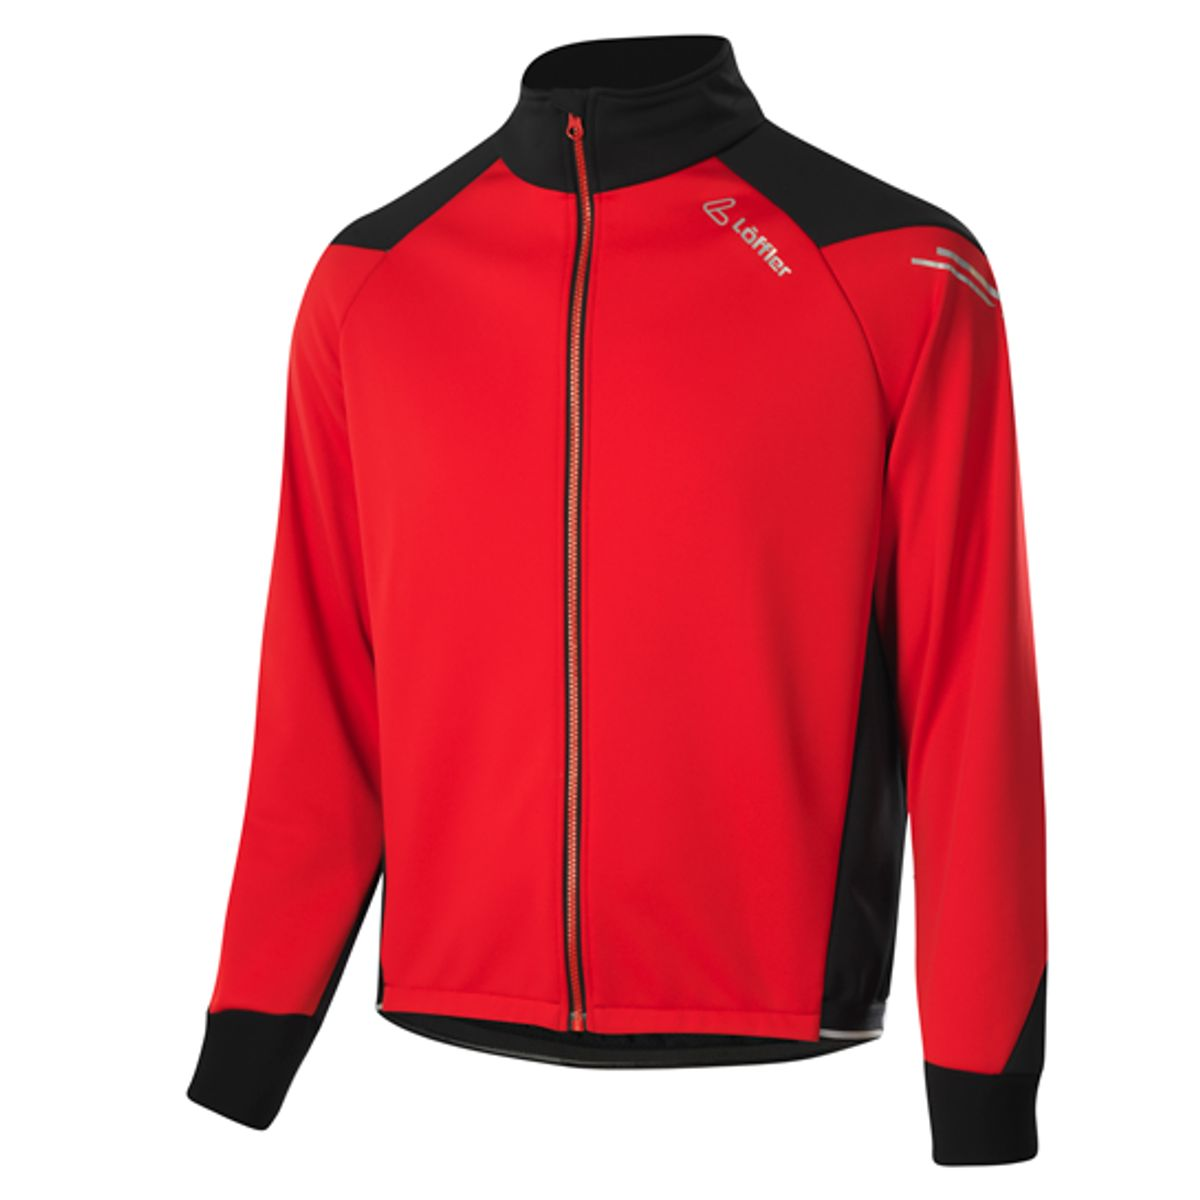 HR. BIKE JACKE BOLOGNA WS WARM Herren Windjacke